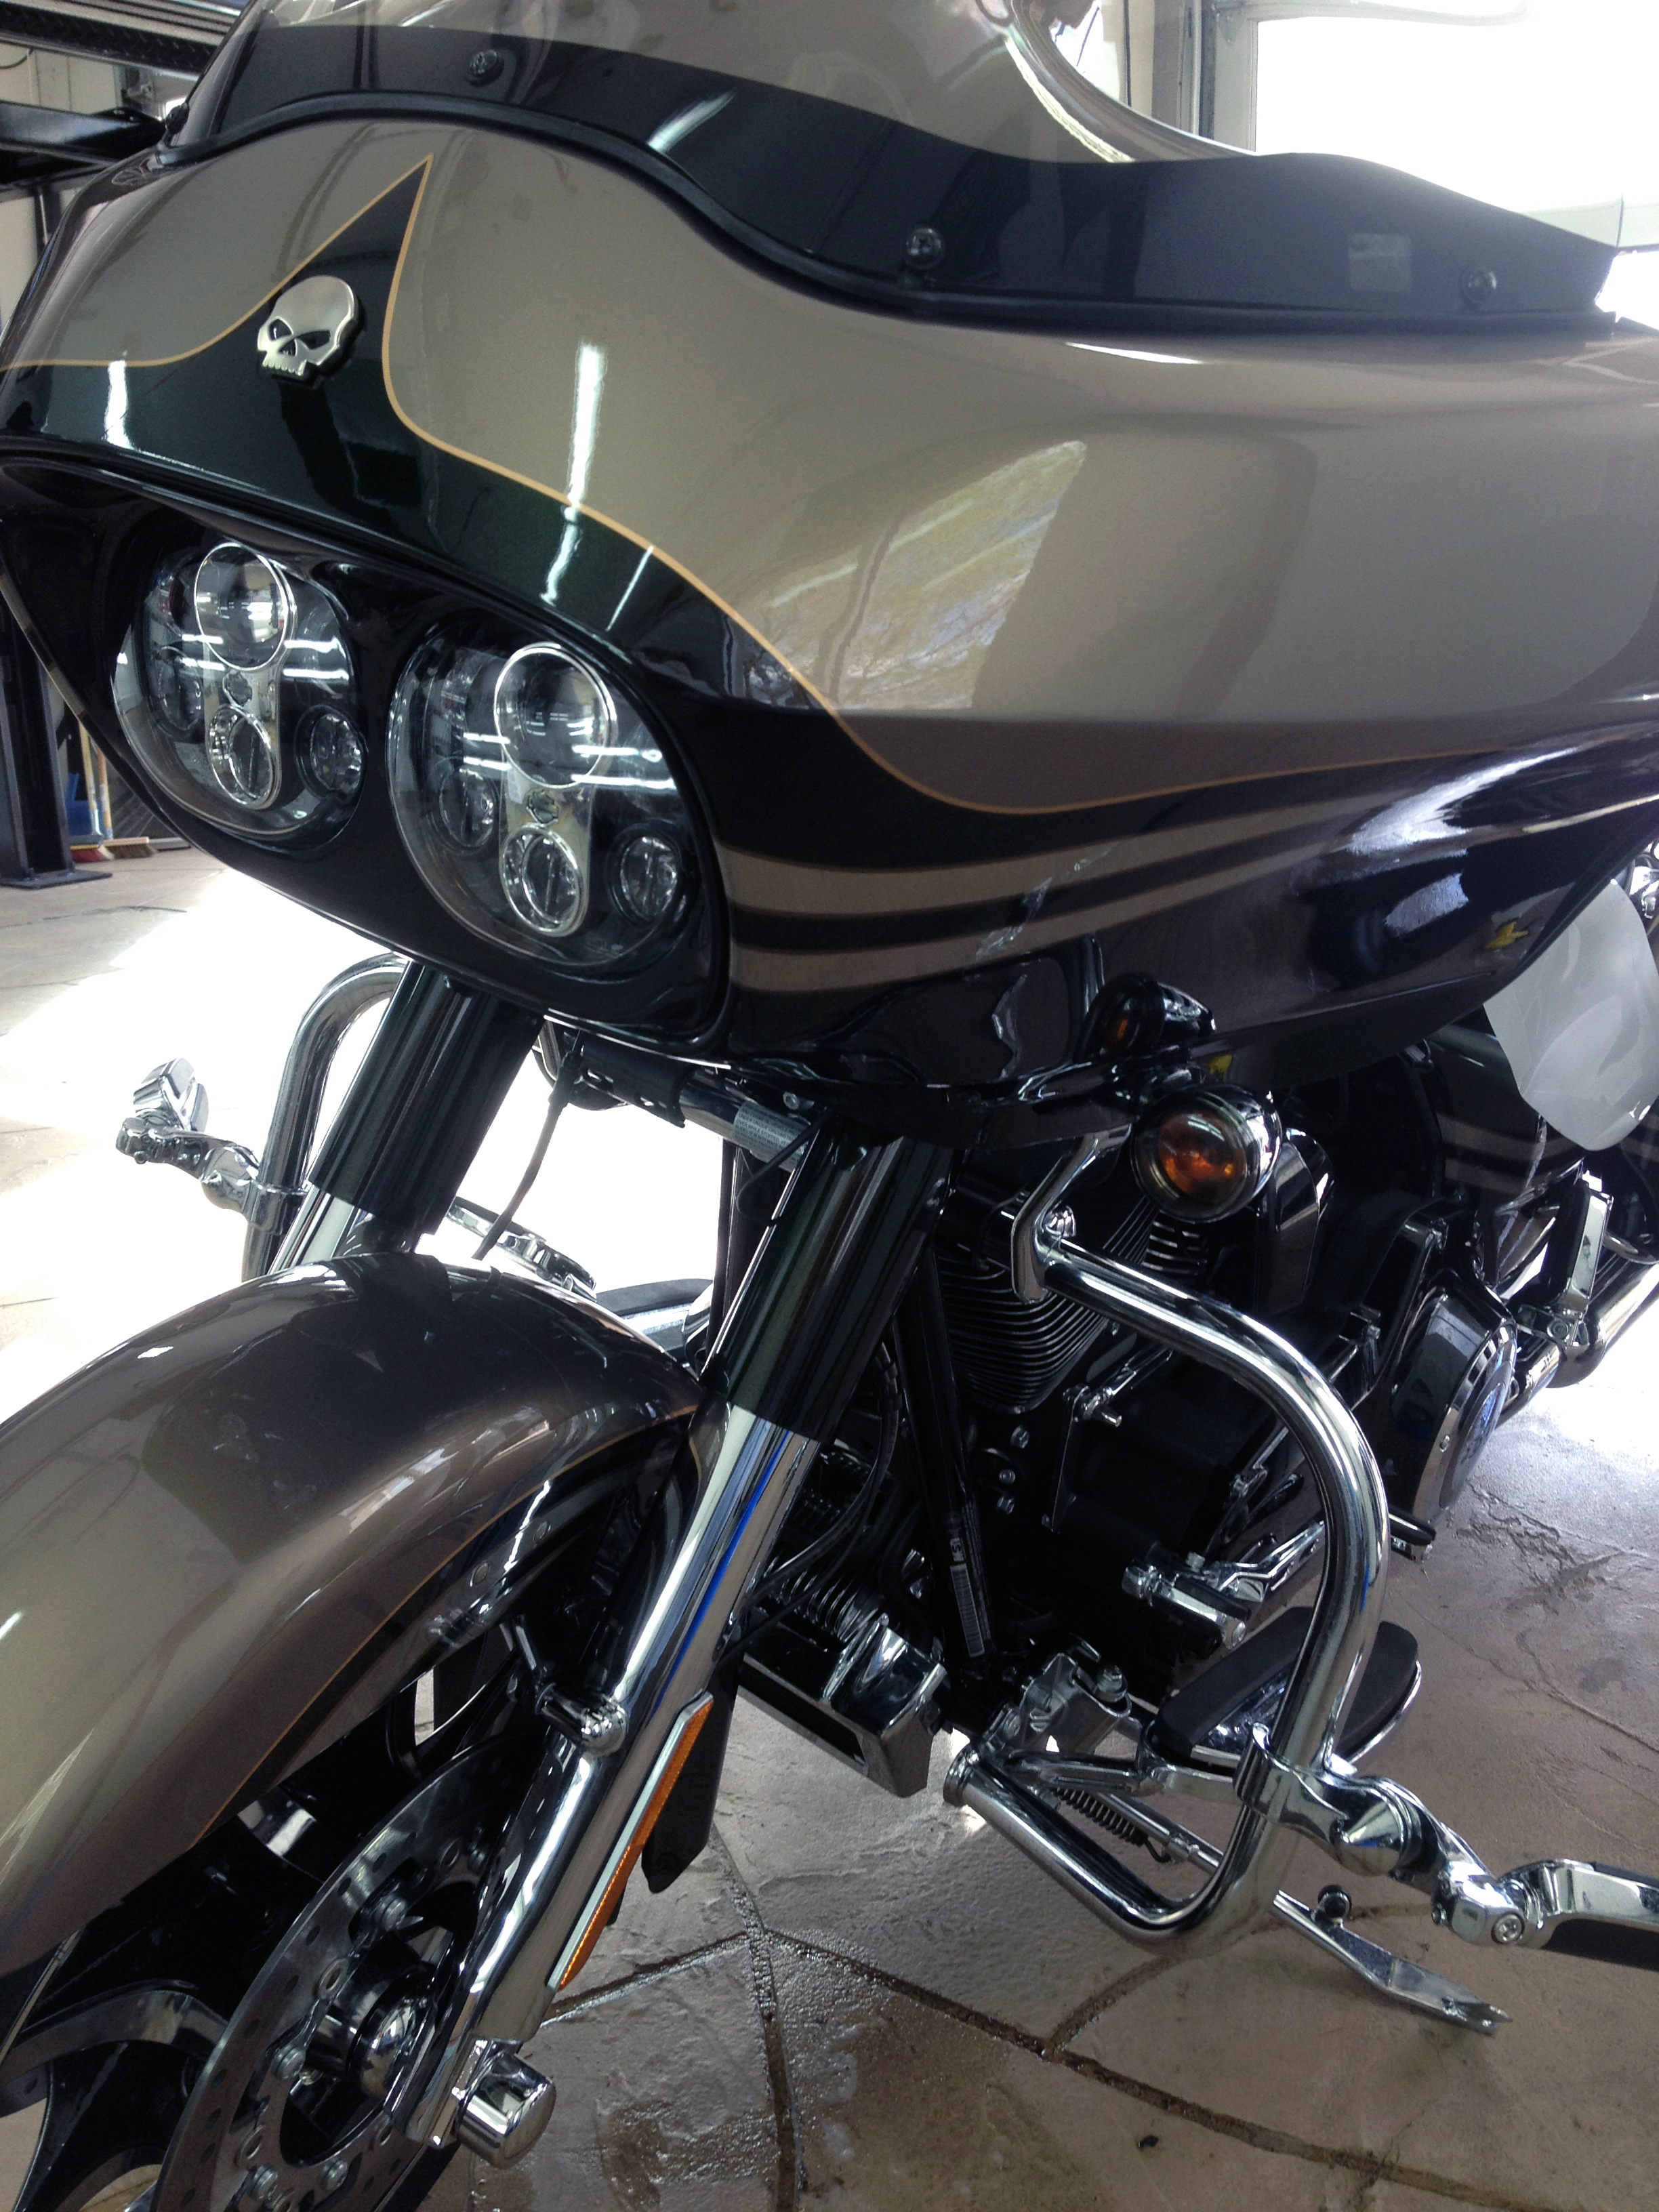 Motorcycle Paint Protection #0066